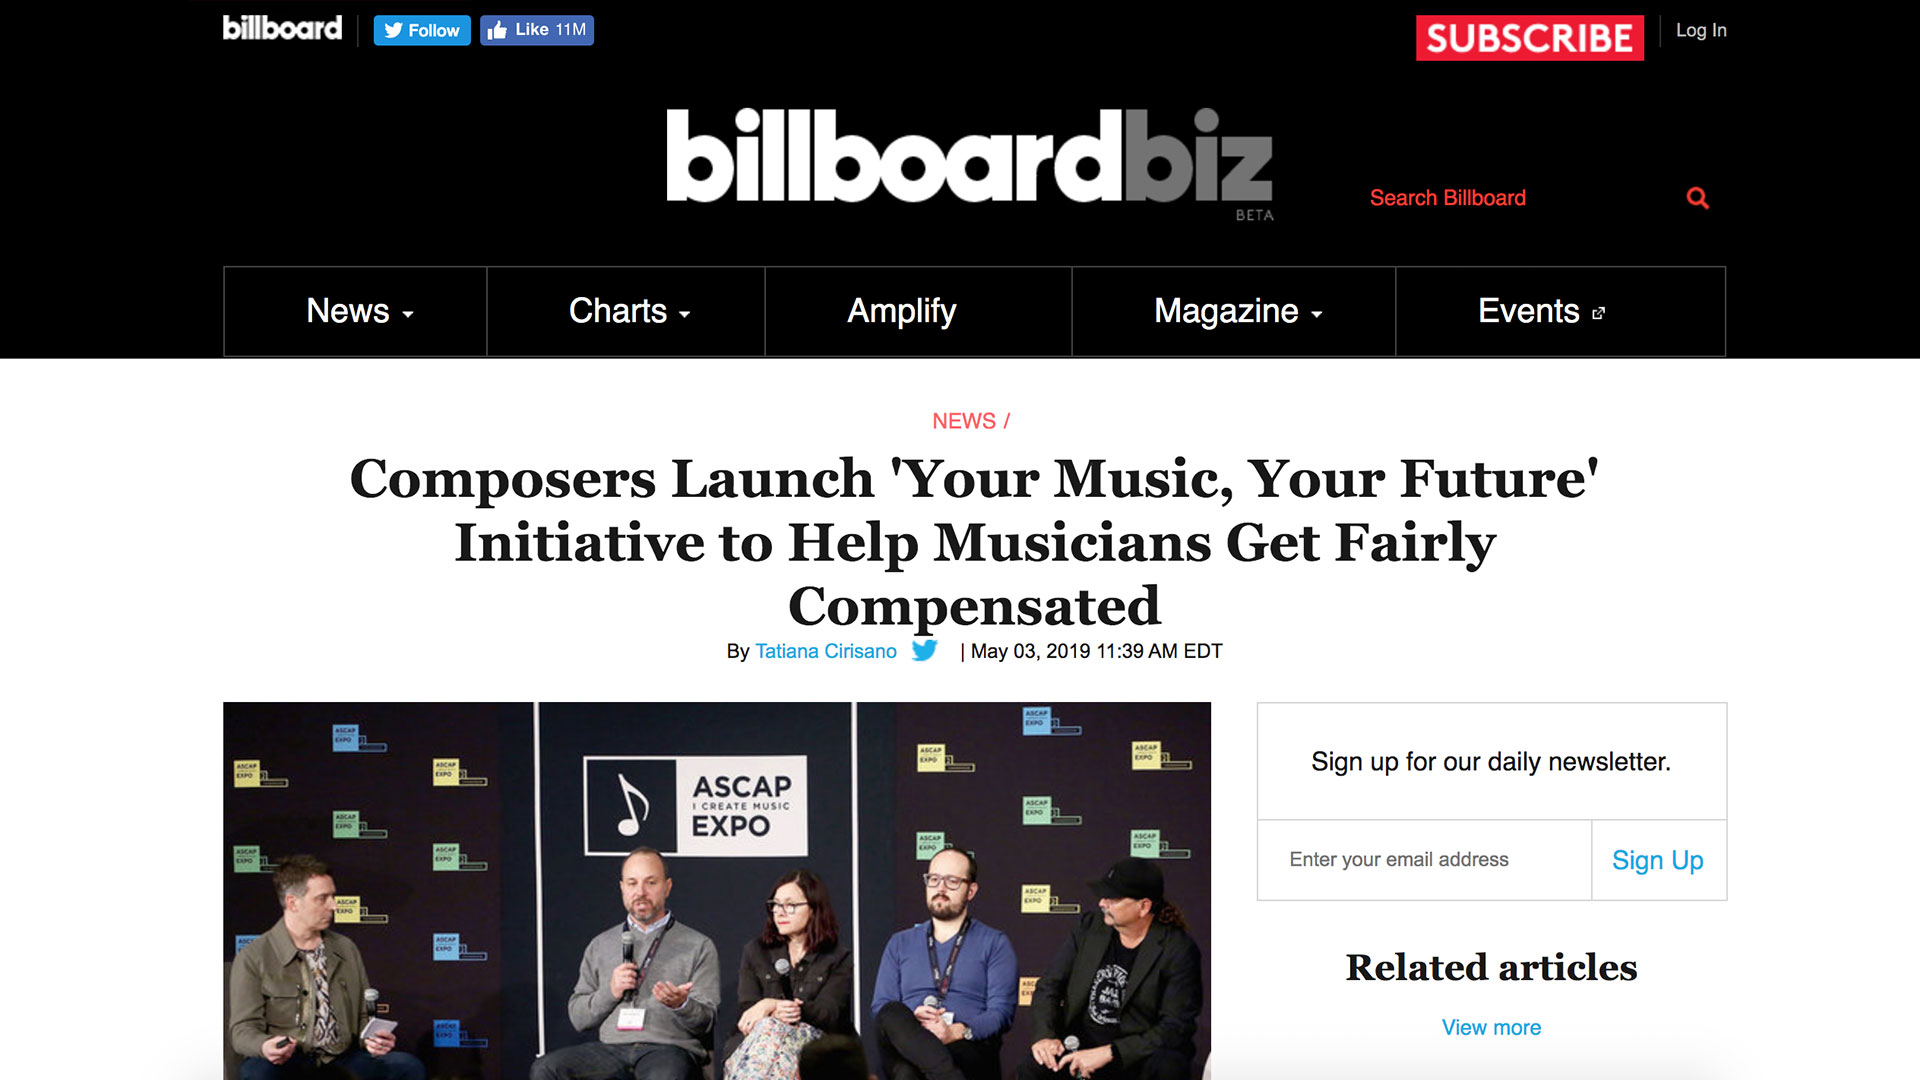 Fairness Rocks News Composers Launch 'Your Music, Your Future' Initiative to Help Musicians Get Fairly Compensated